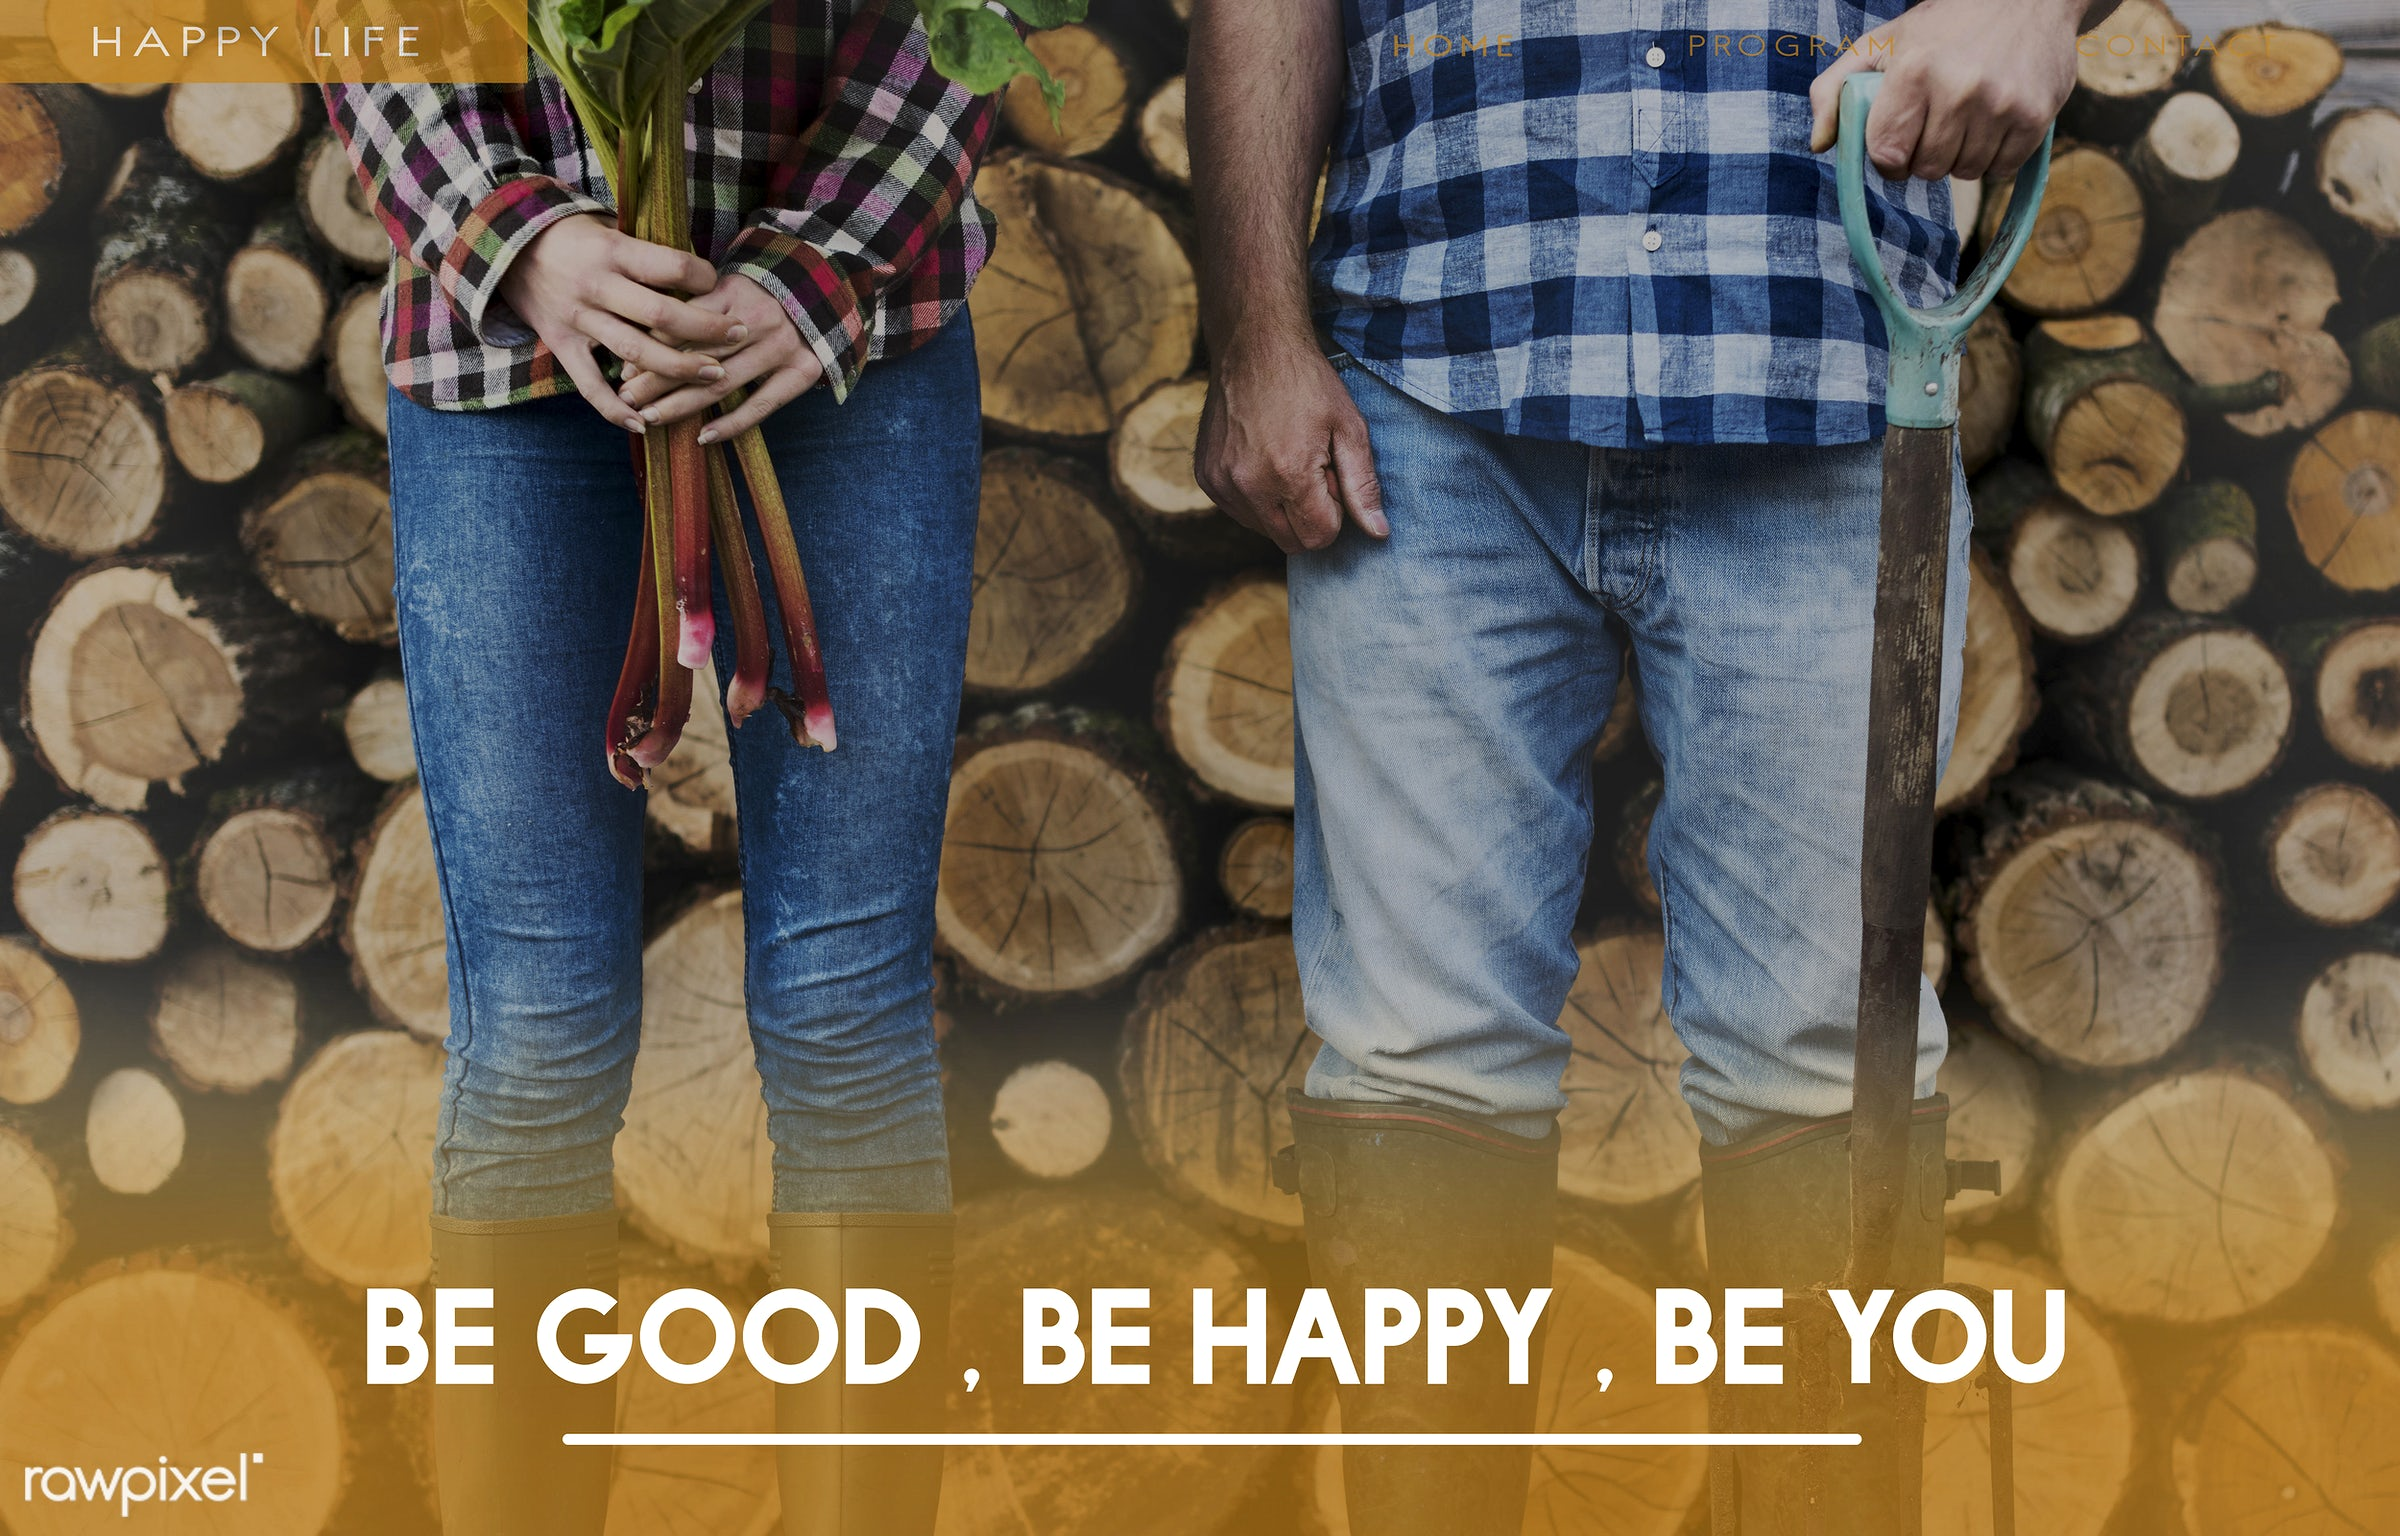 be good, be happy, be you, be yourself, believe, caucasian, farm, farmer, firewood, hands, happy, holding, individual, jeans...